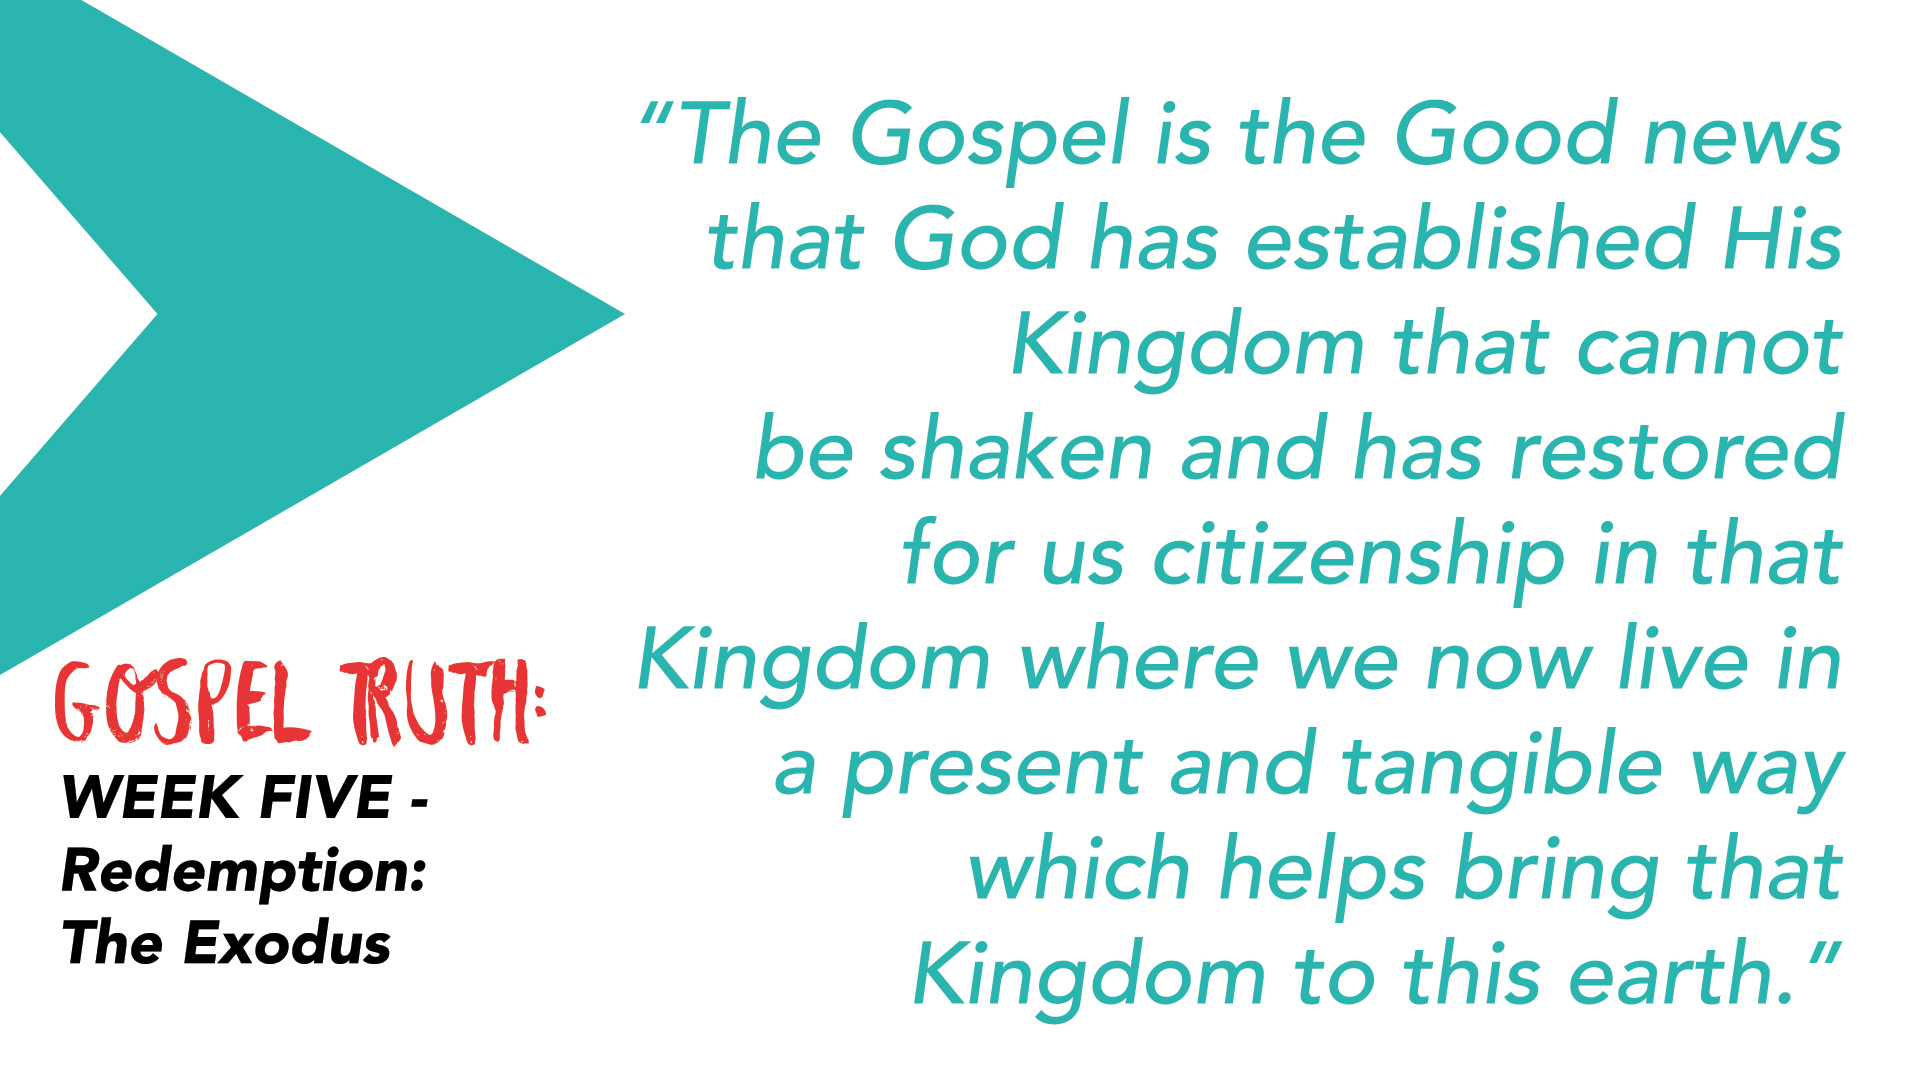 """The Gospel is the Good news that God has established His Kingdom that cannot be shaken and has restored for us citizenship in that Kingdom where we now live in a present and tangible way which helps bring that Kingdom to this earth."""